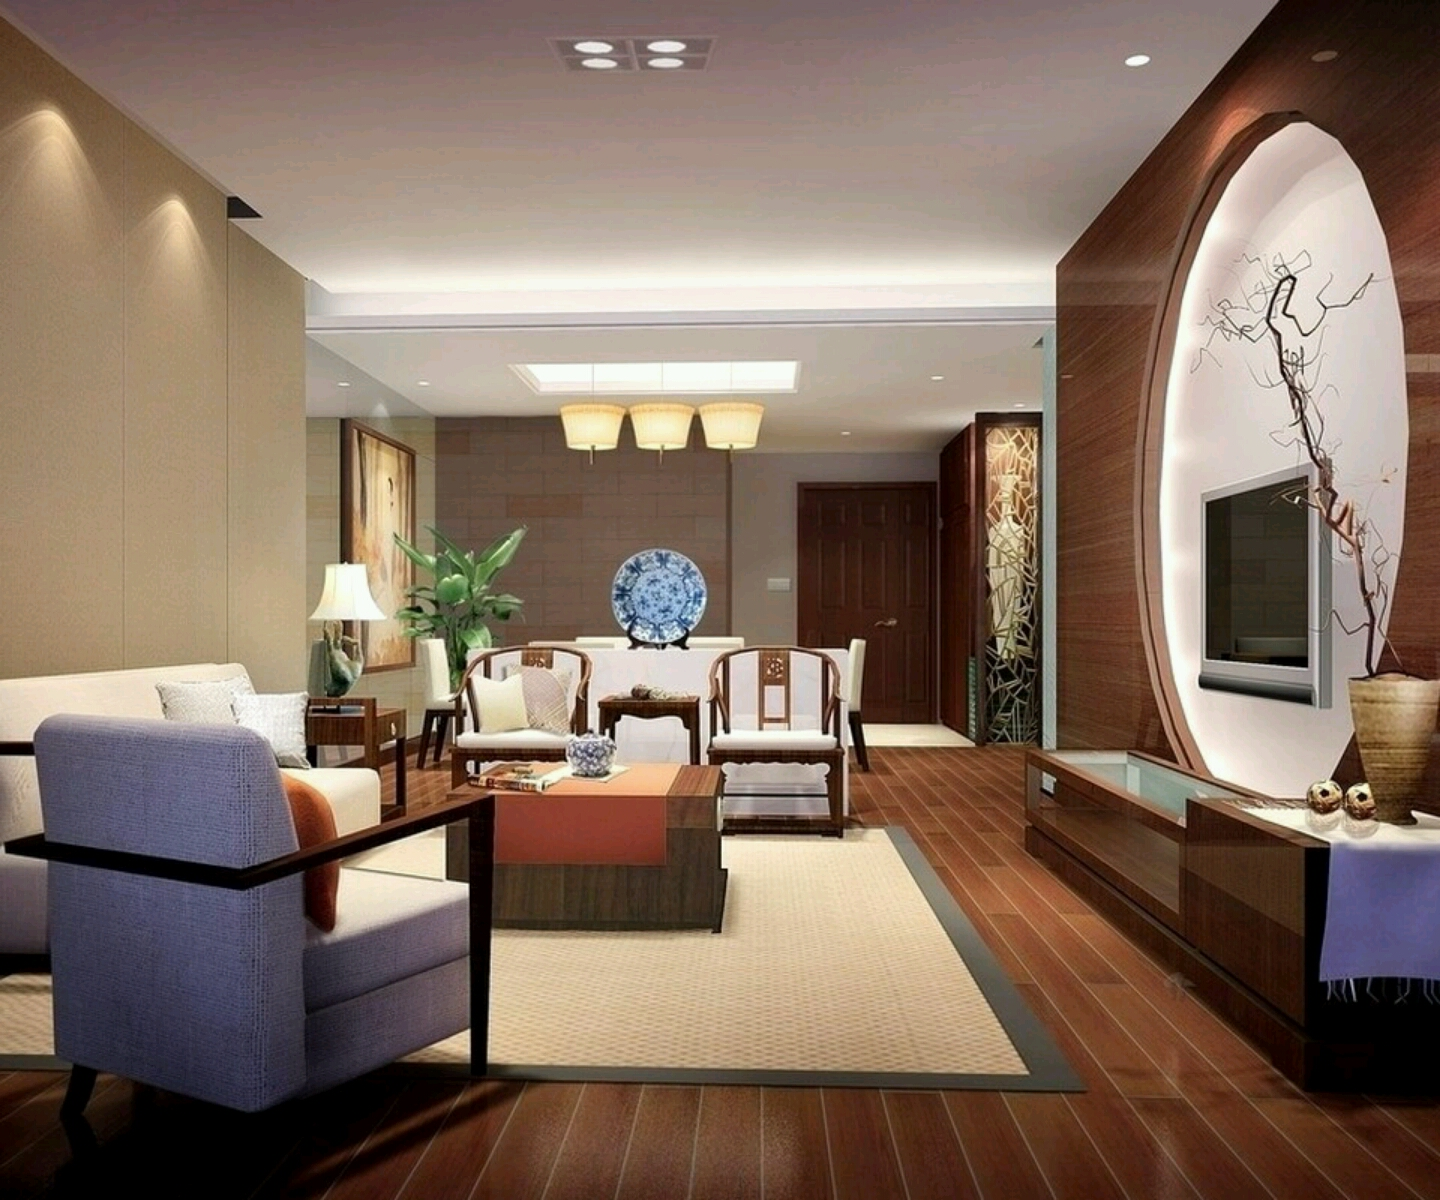 Luxury homes interior decoration living room designs ideas modern home designs - Home design inside ...